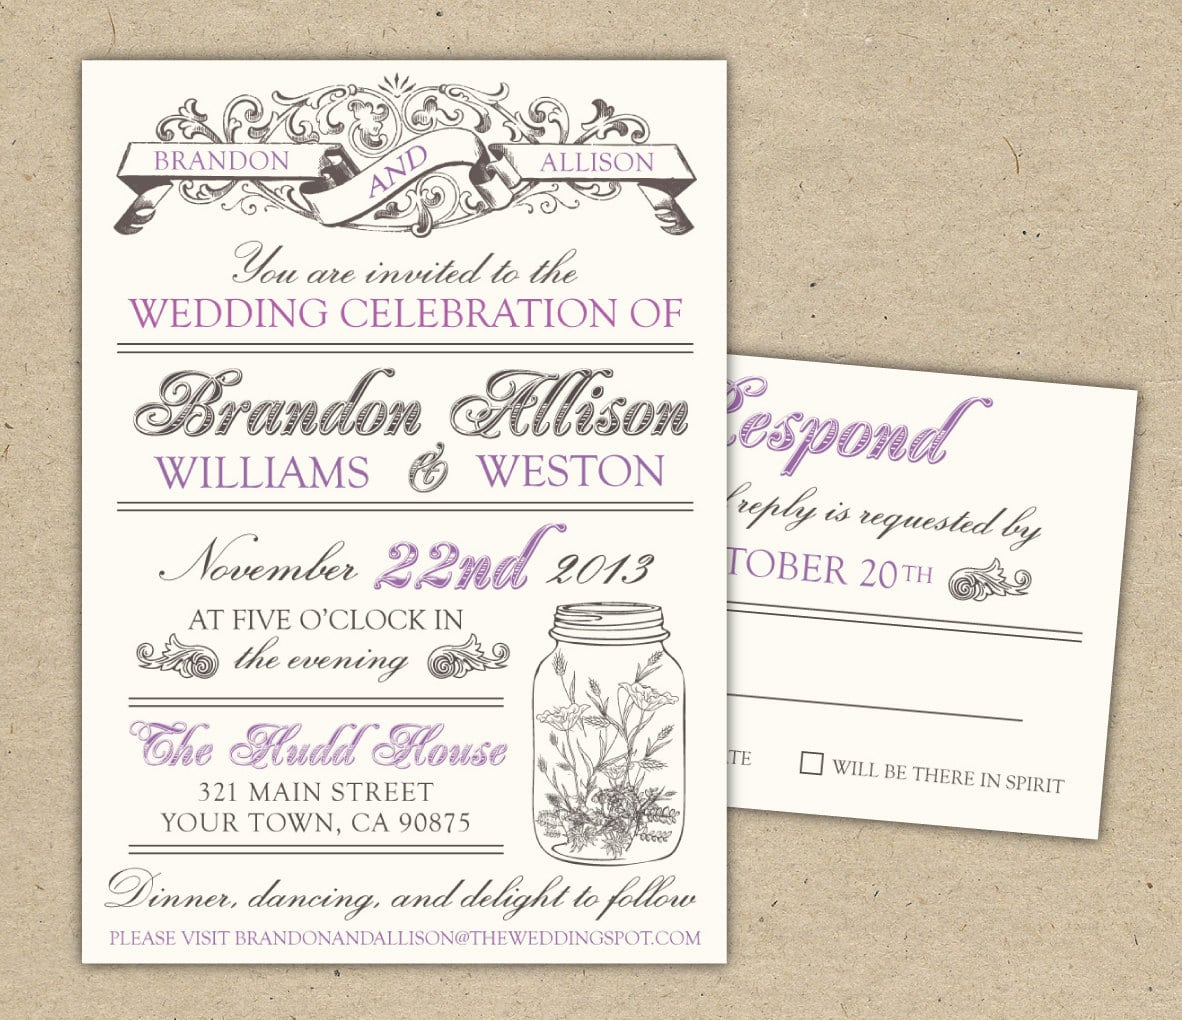 Vintage Wedding Invitation Template Free dNNGUFo1